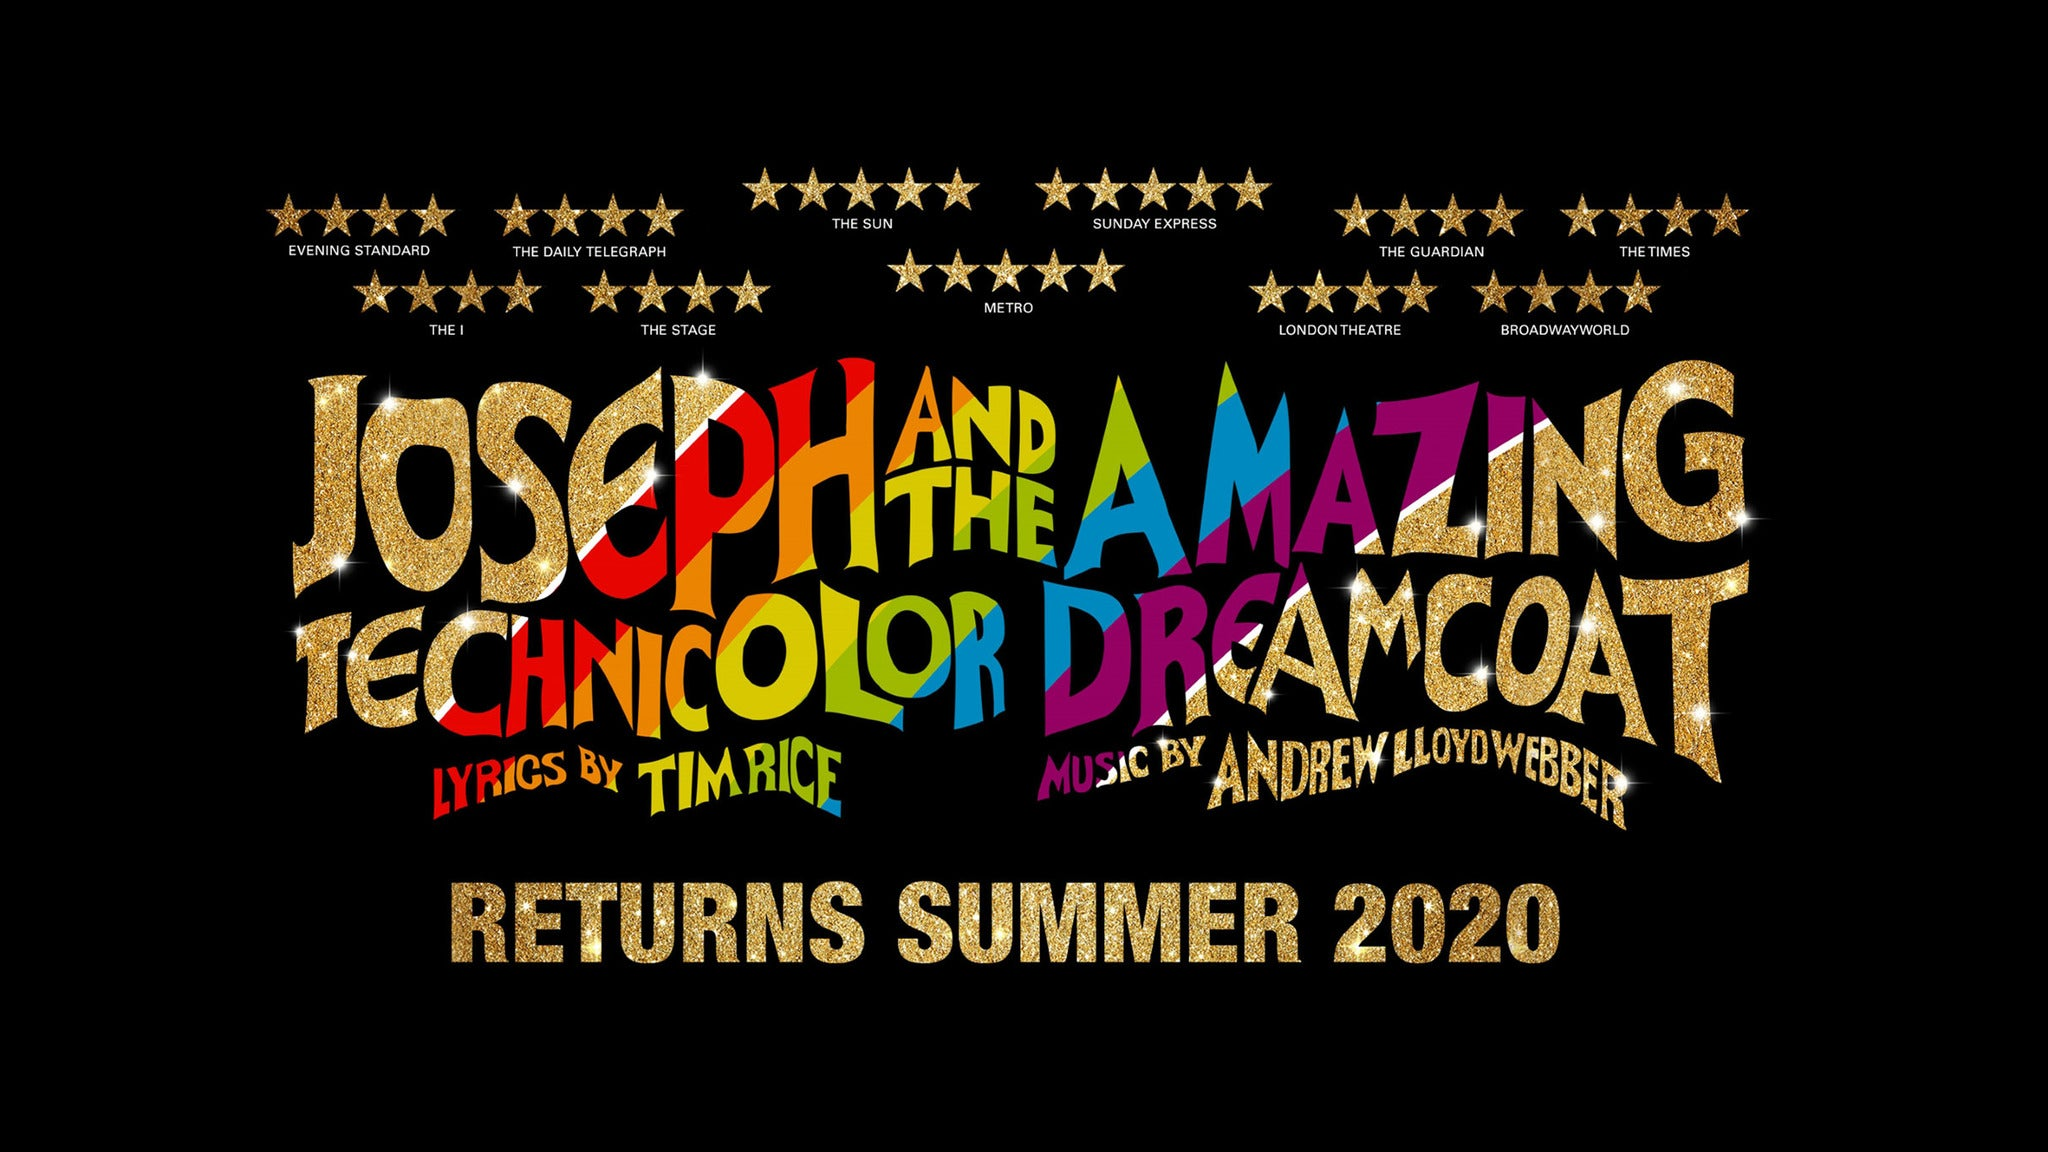 Joseph and the Amazing Technicolor Dreamcoat Seating Plan London Palladium